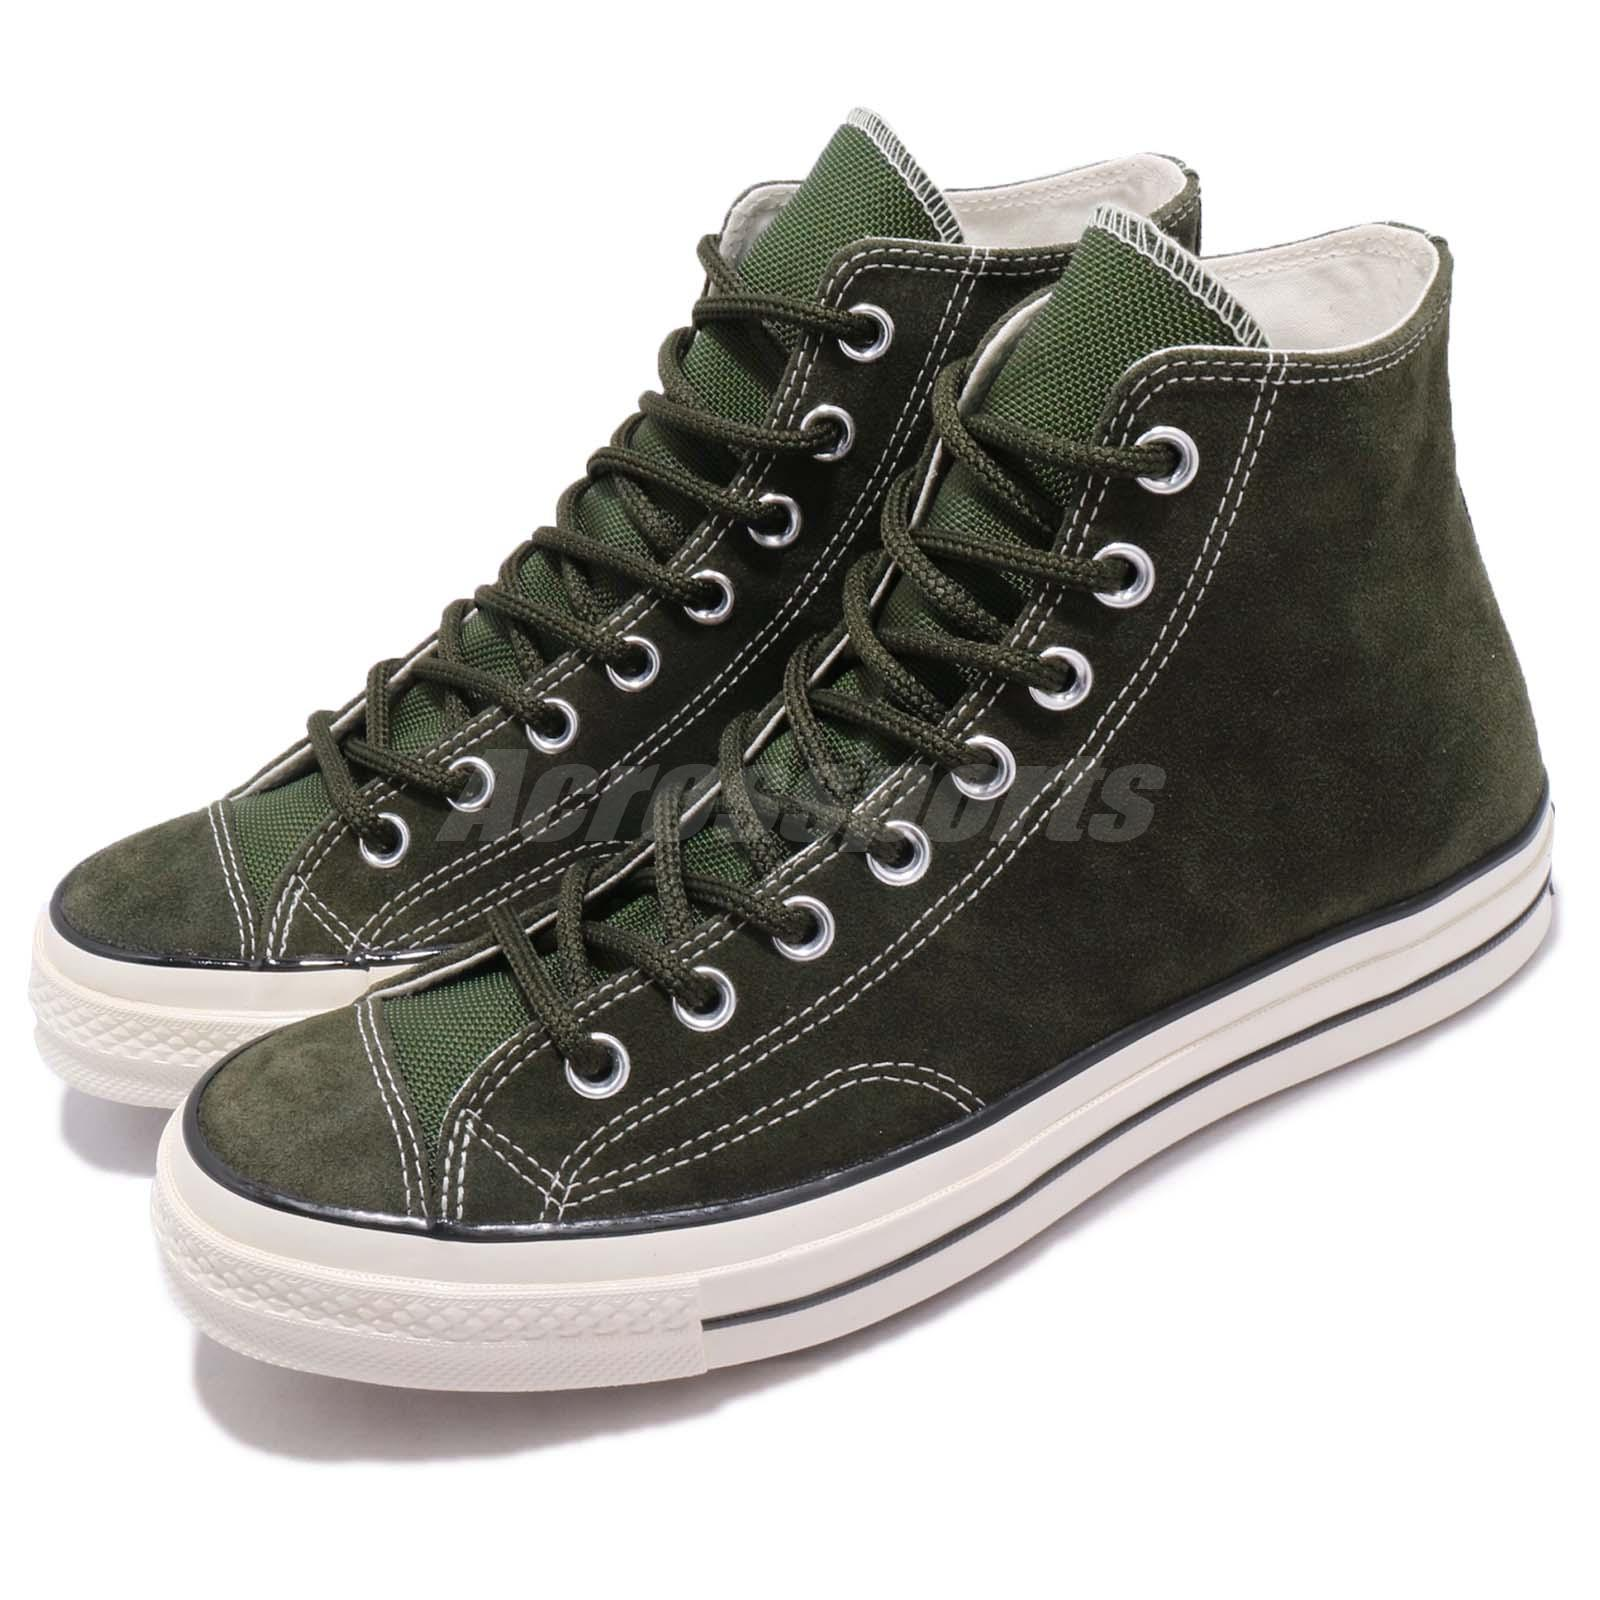 1fc823190579 Details about Converse First String Chuck Taylor All Star 70 Hi Green Men Women  Shoes 162371C